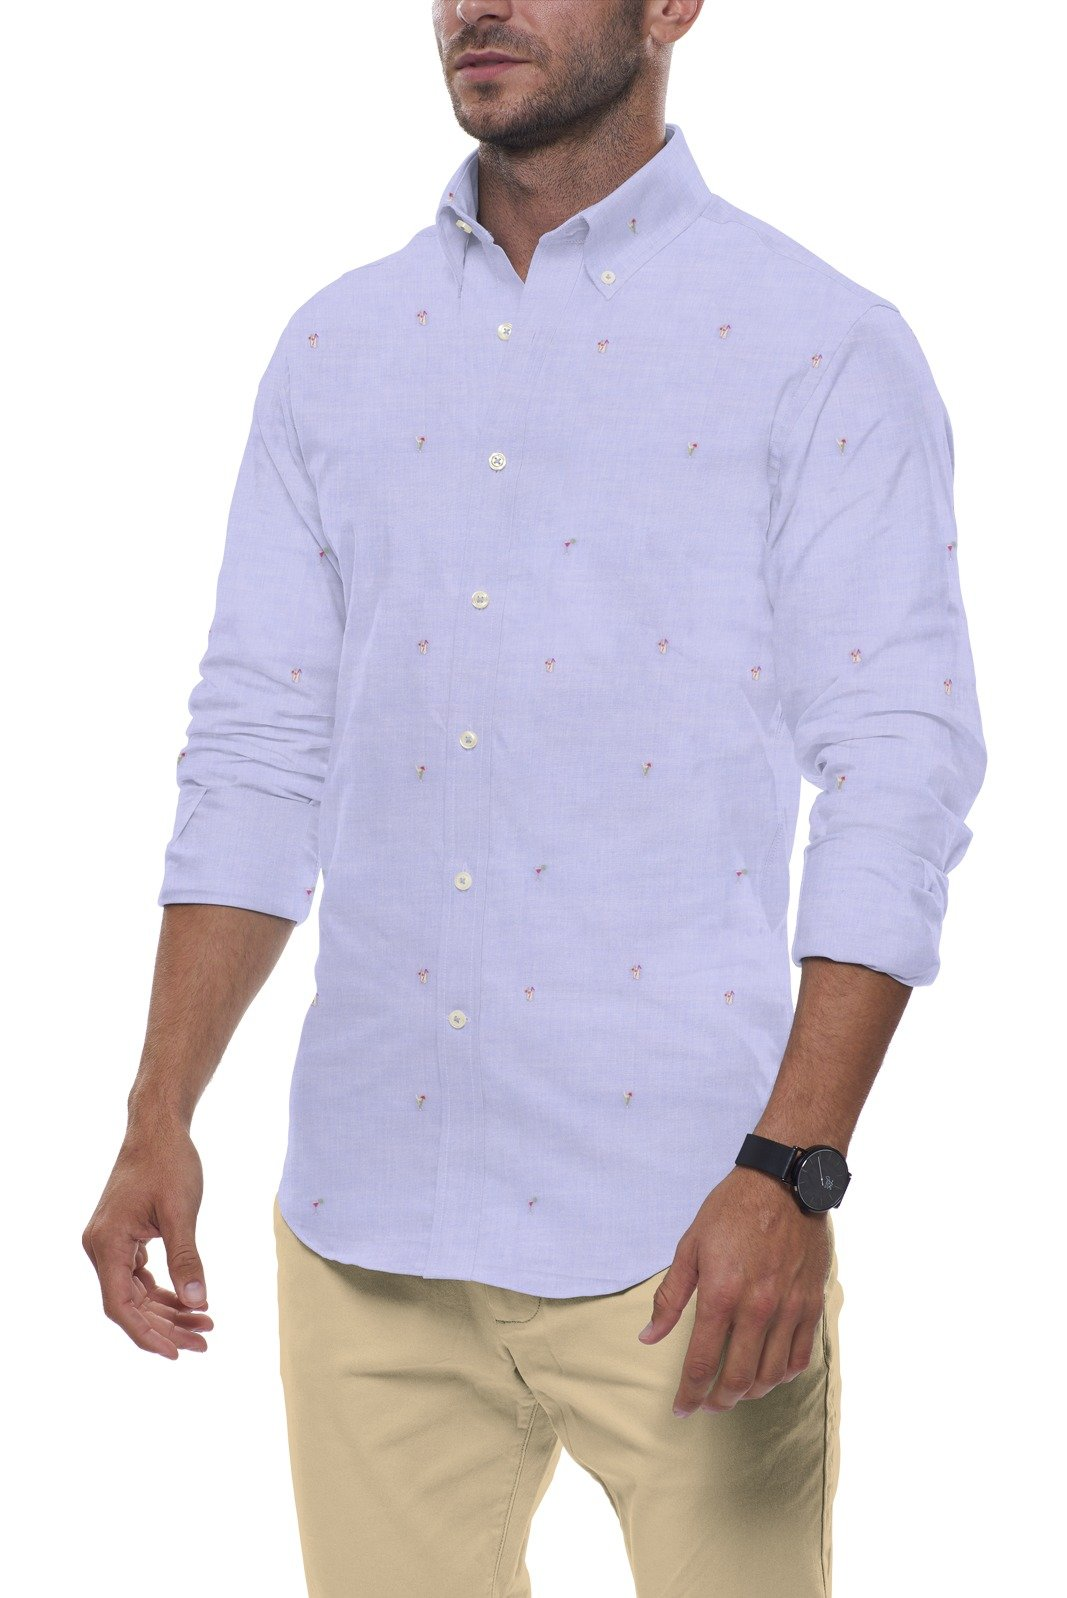 Beach Days Fil Coupe in Light Blue: Button-Down Collar, Long Sleeve